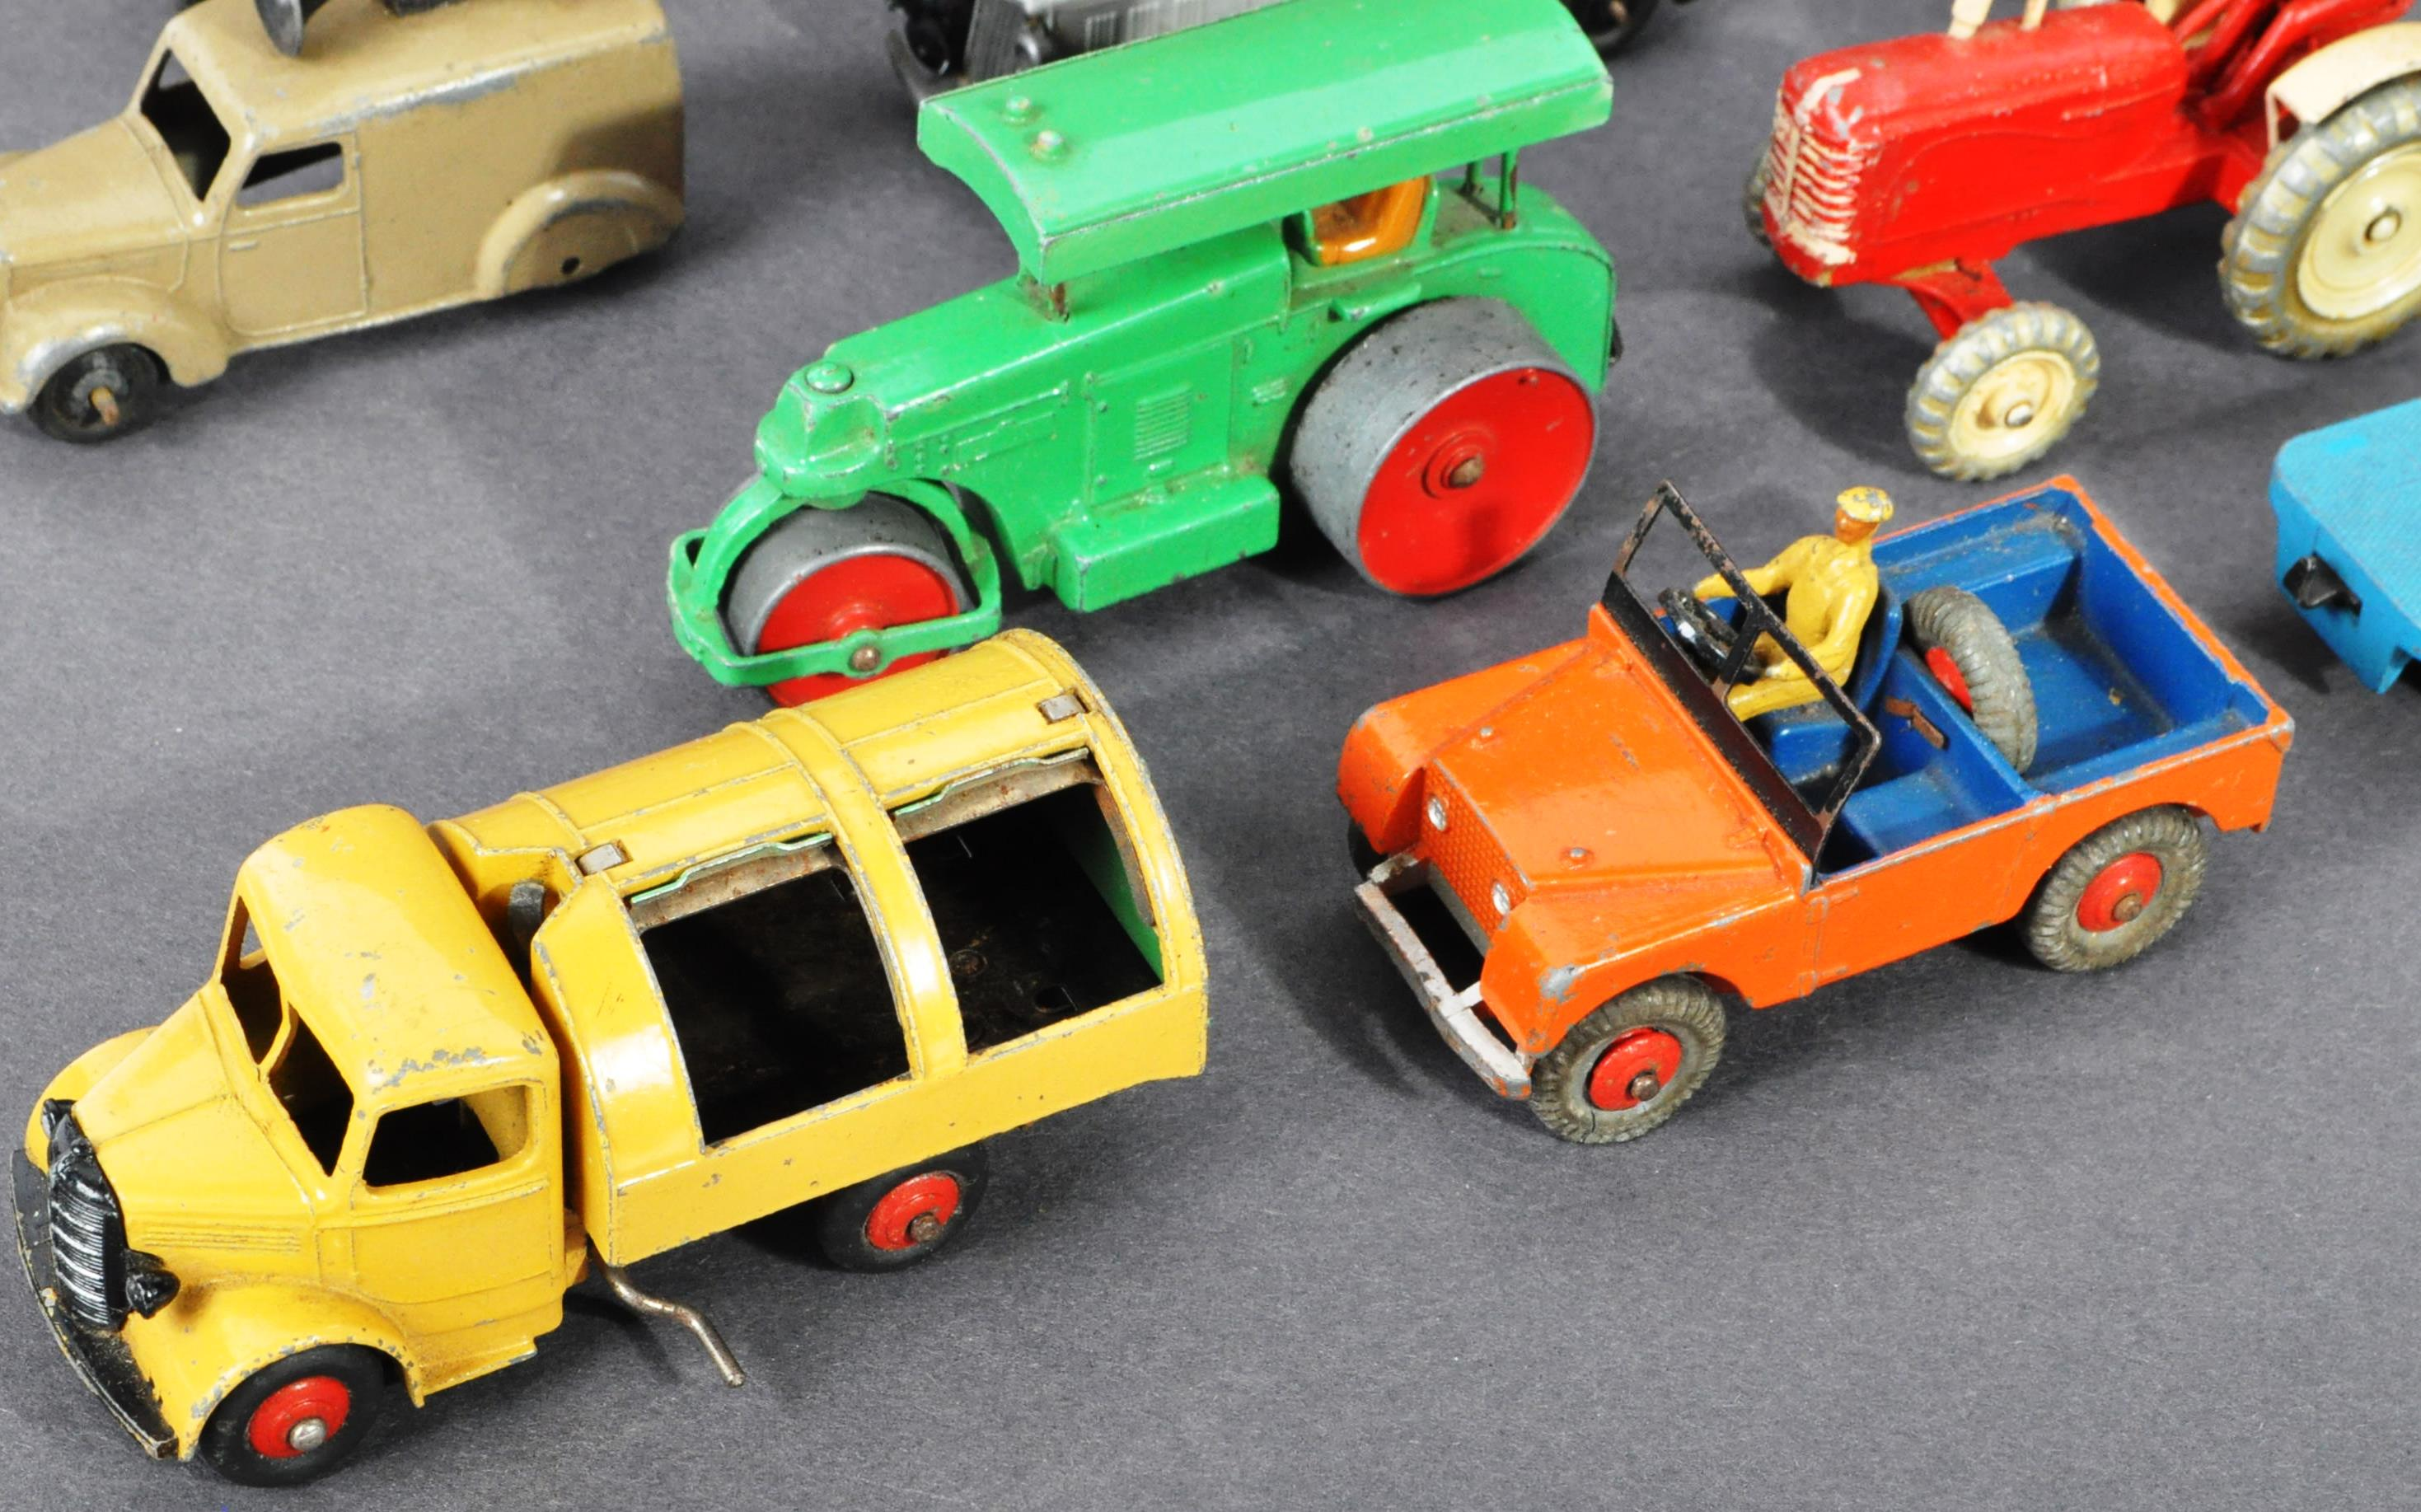 COLLECTION OF ORIGINAL VINTAGE DINKY TOYS DIECAST MODELS - Image 5 of 6